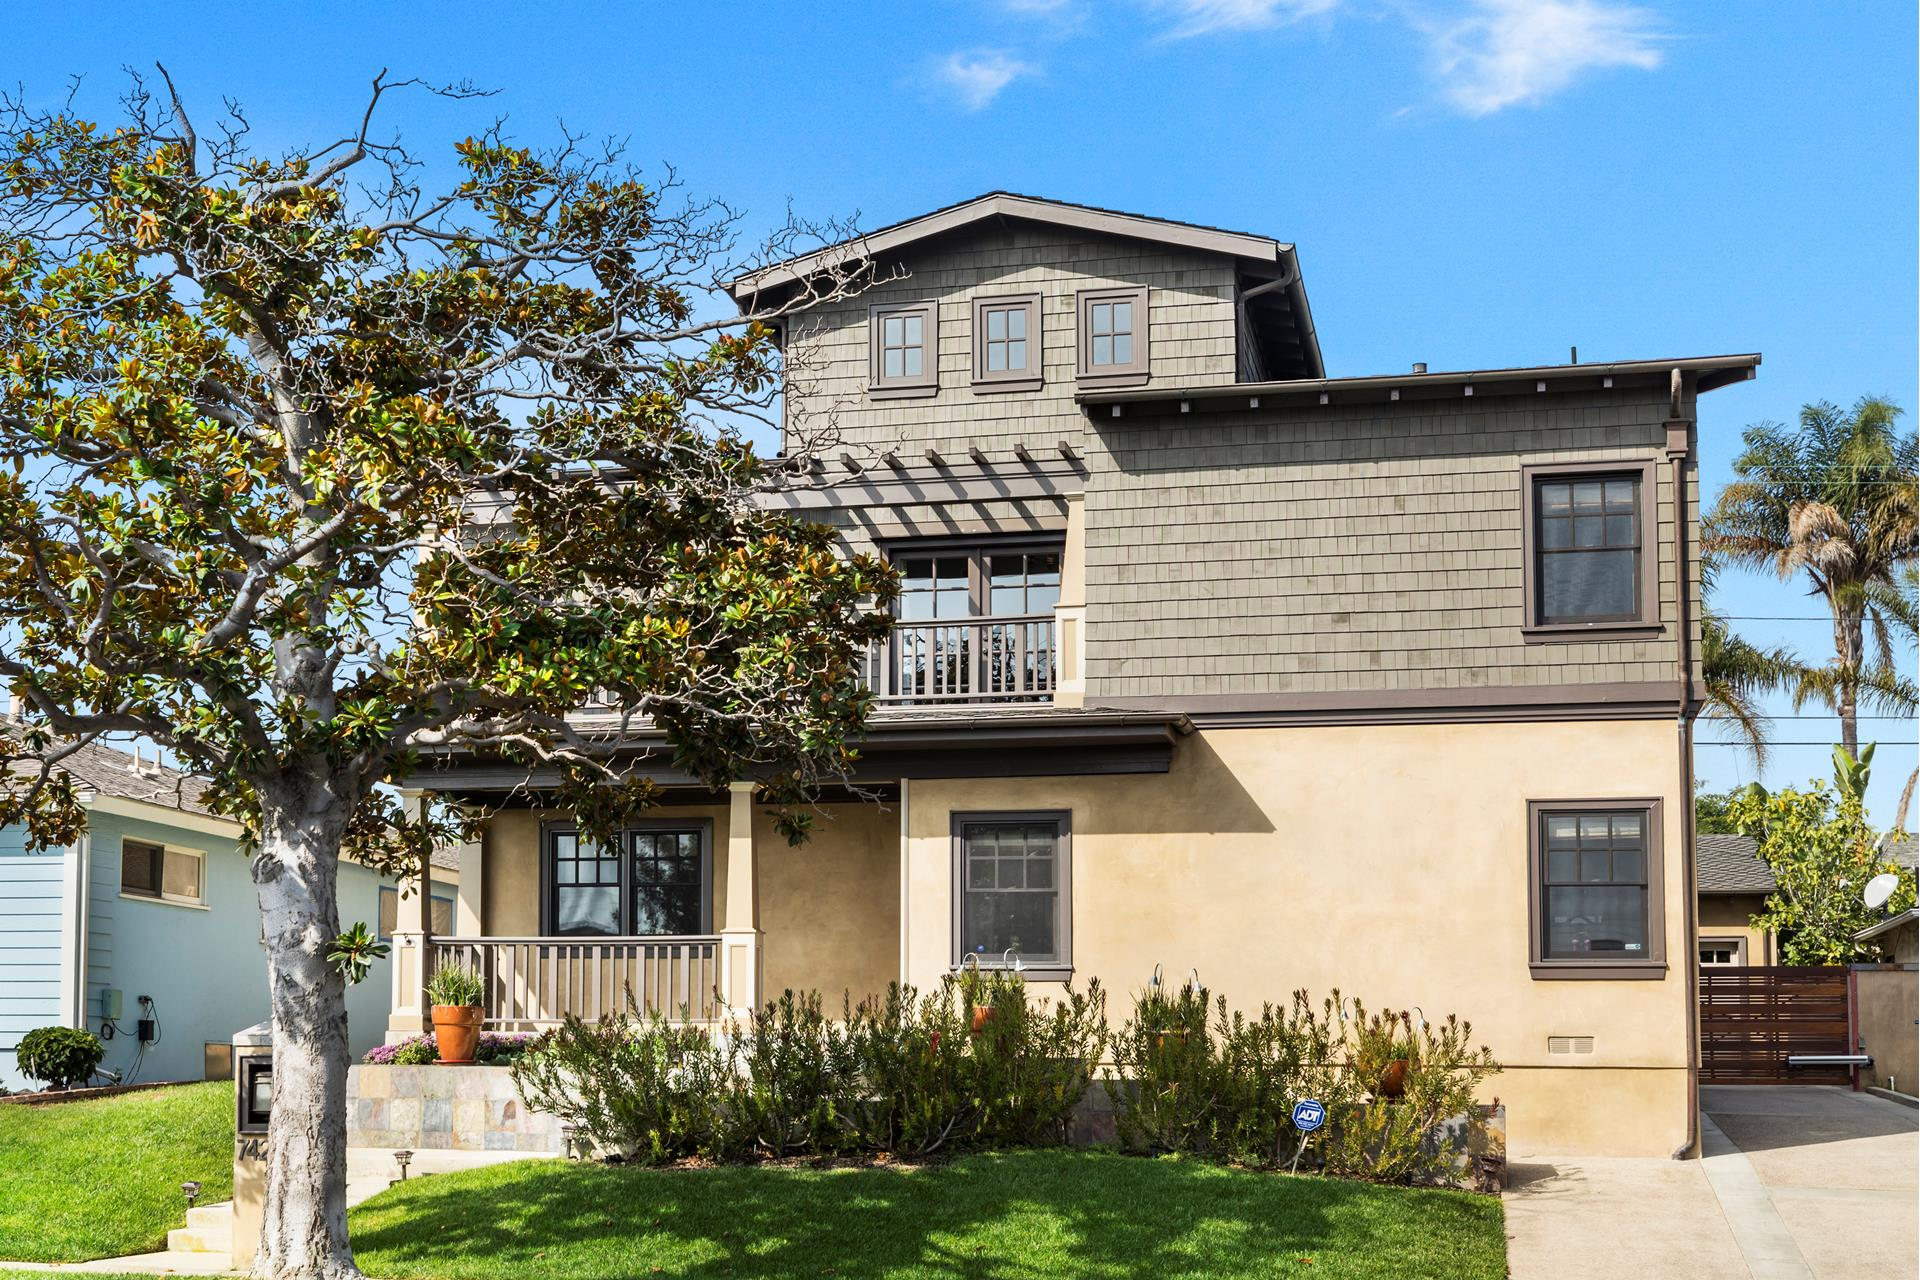 7425 OGELSBY Avenue - Westchester, California